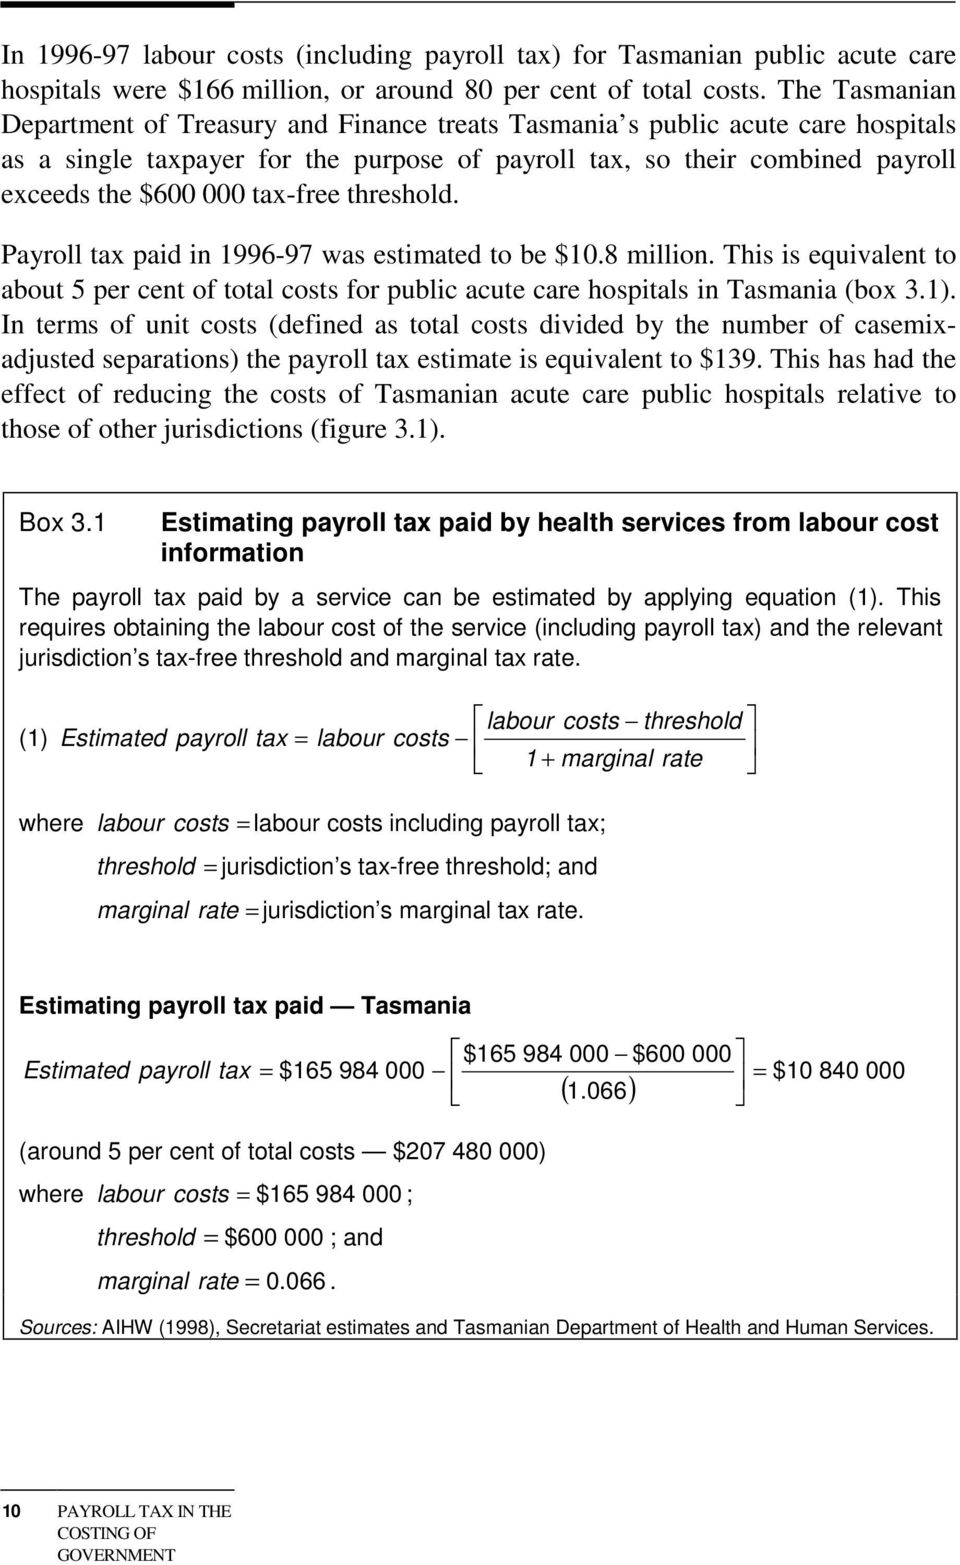 tax-free threshold. Payroll tax paid in 1996-97 was estimated to be $10.8 million. This is equivalent to about 5 per cent of total costs for public acute care hospitals in Tasmania (box 3.1).